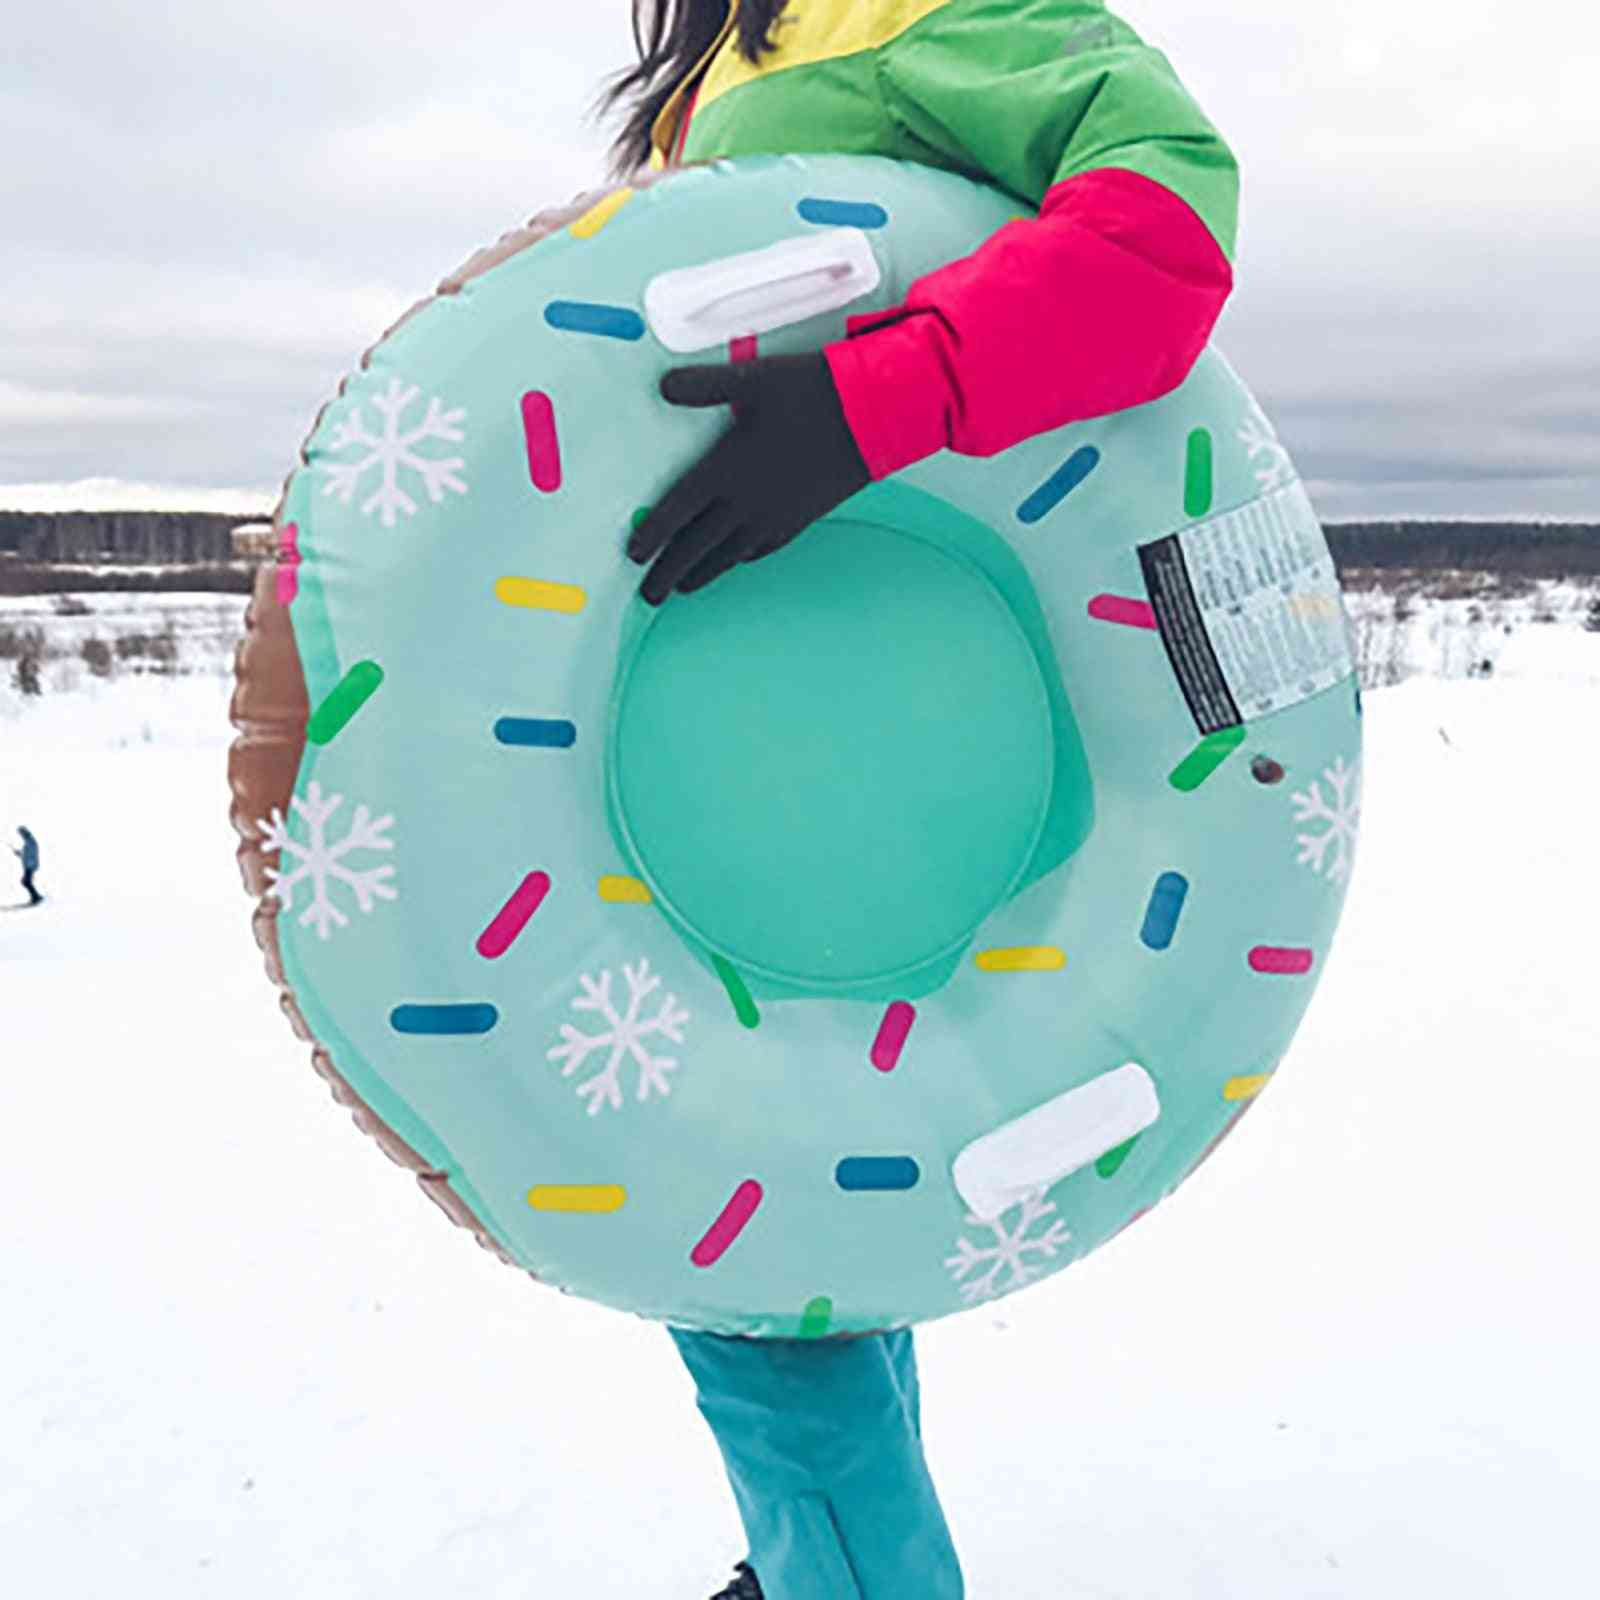 Inflatable Floated Skiing Ring With Handle